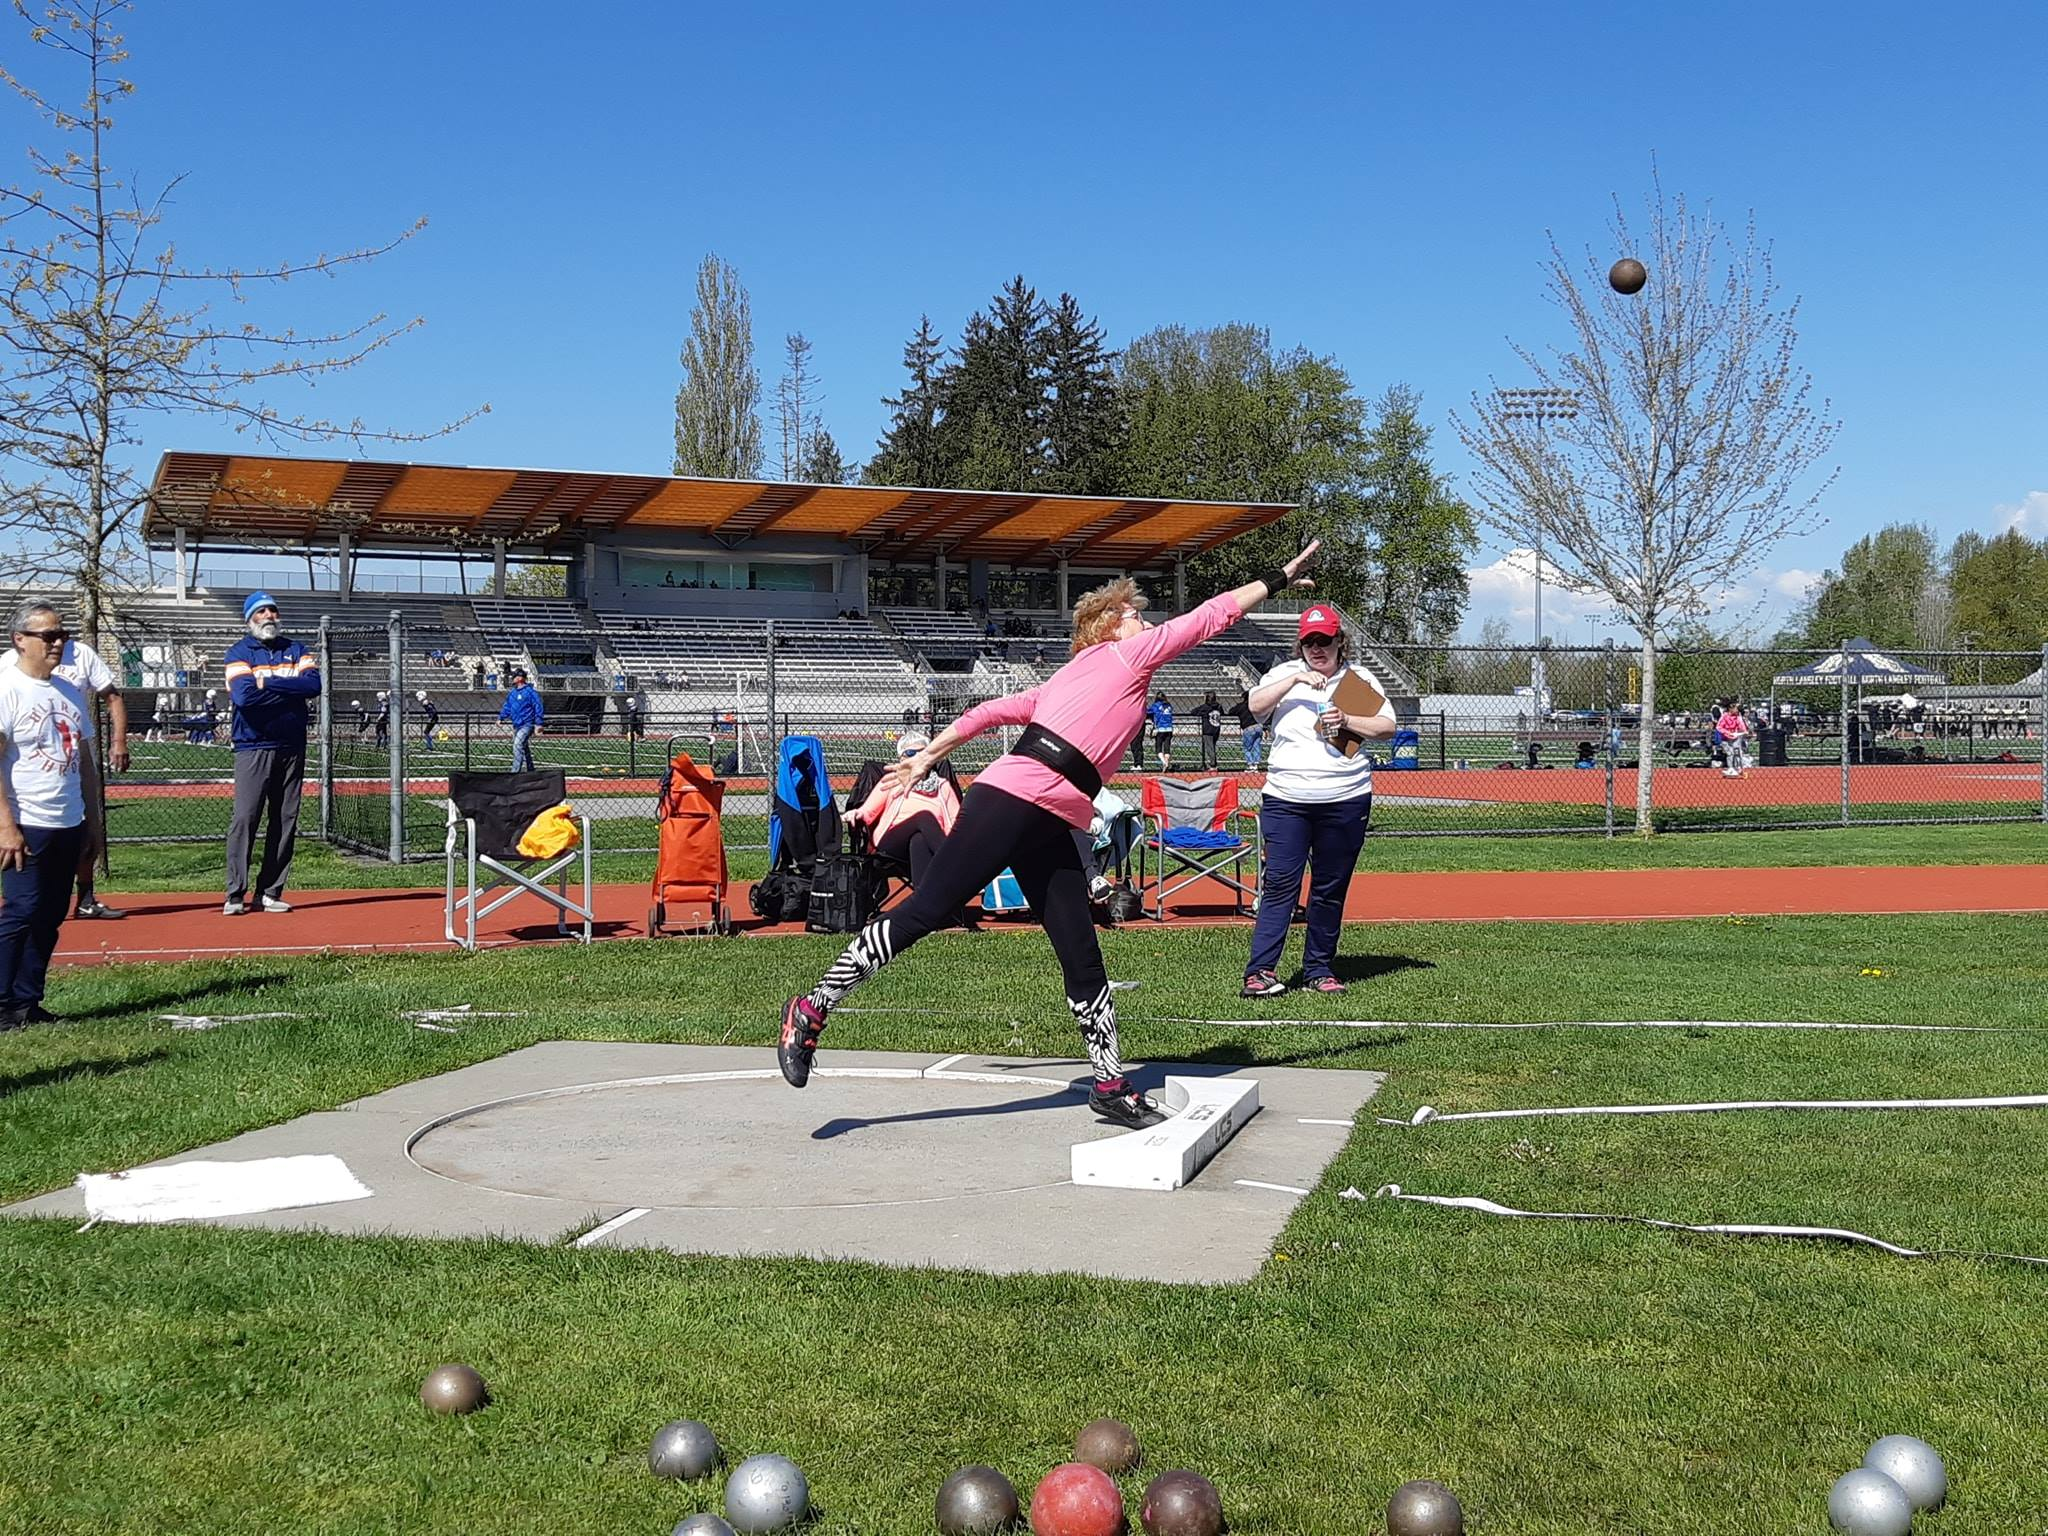 Laura Hessel of Alberta competes in the shot put in Ultra Throw Fest #1 in April 2019